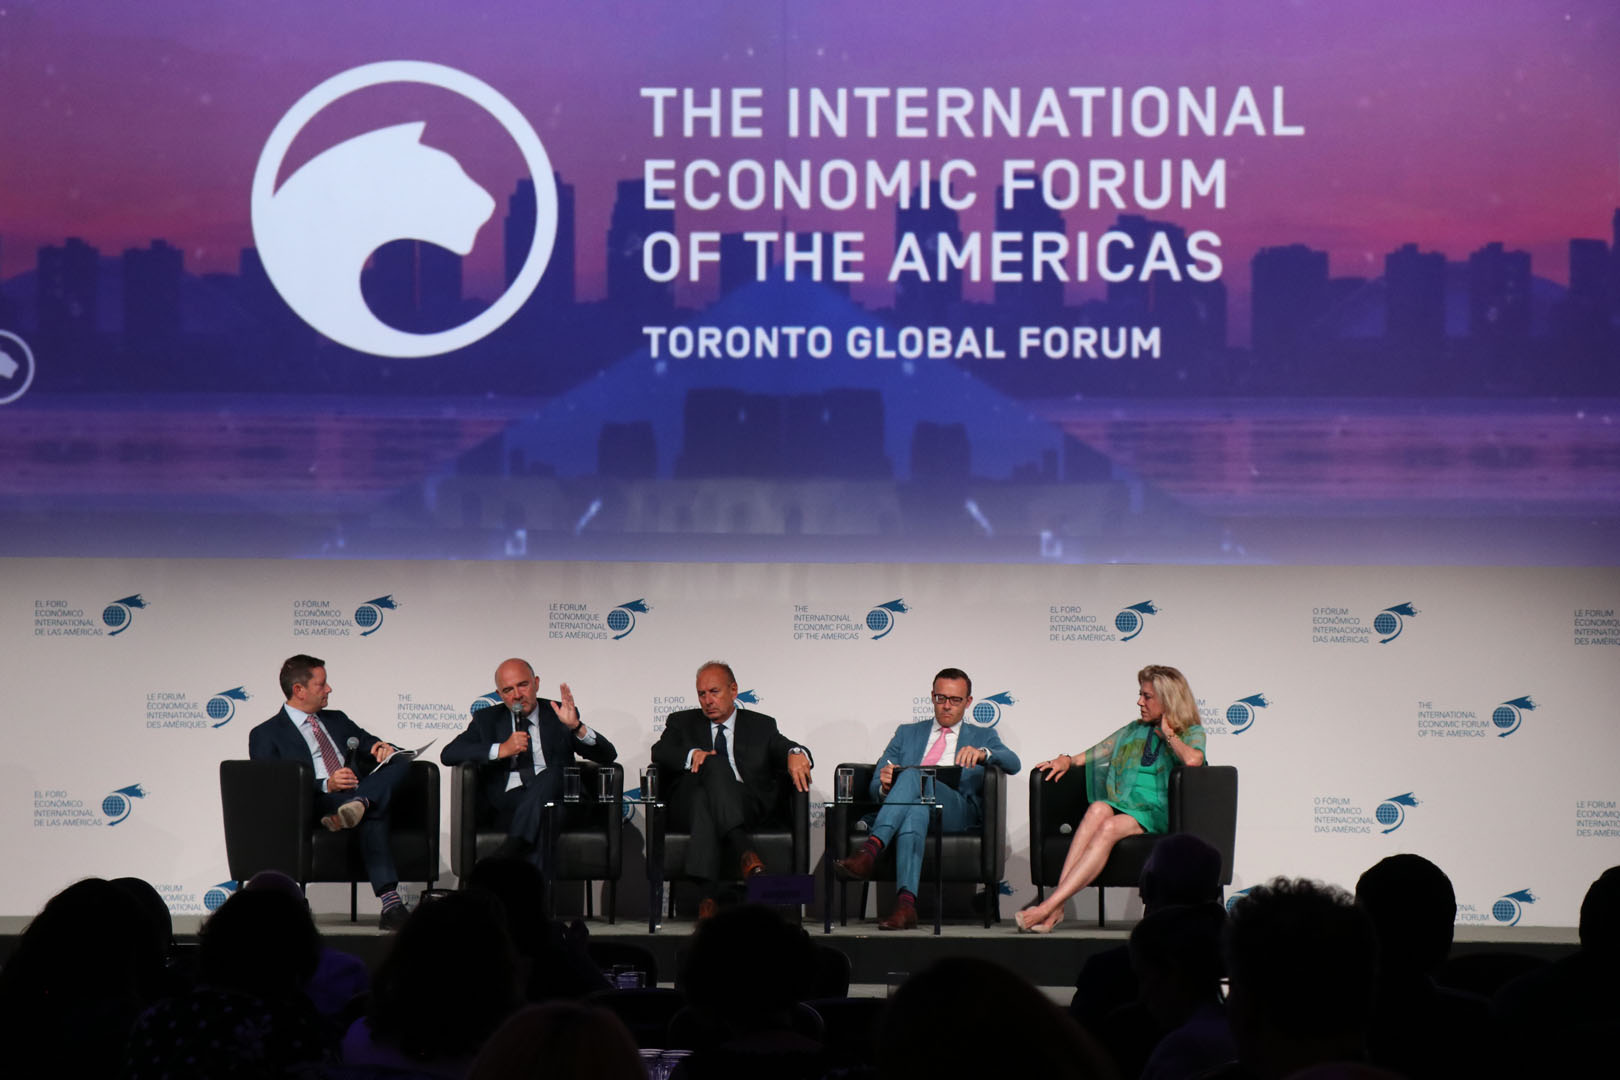 Inaugural Plenary Session - Leading the New Economy